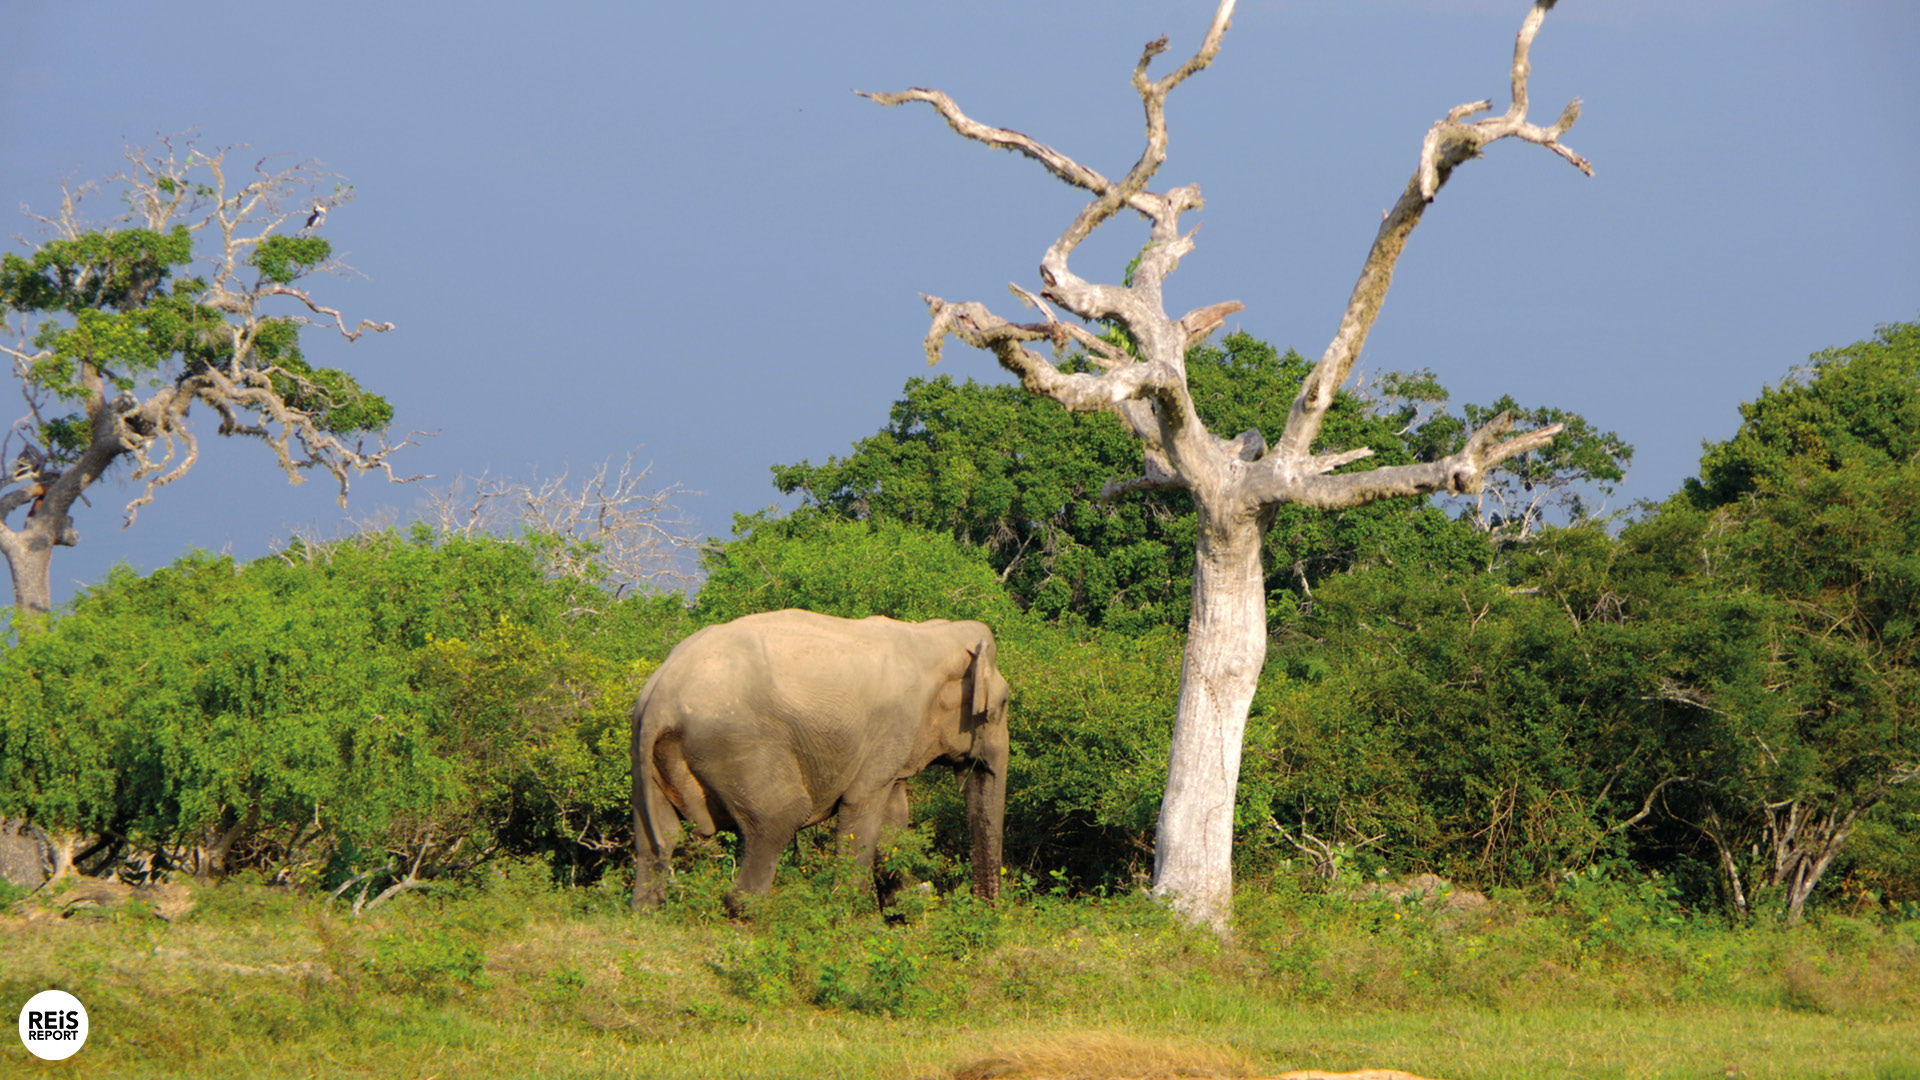 Jeepsafari Yala National Park cover